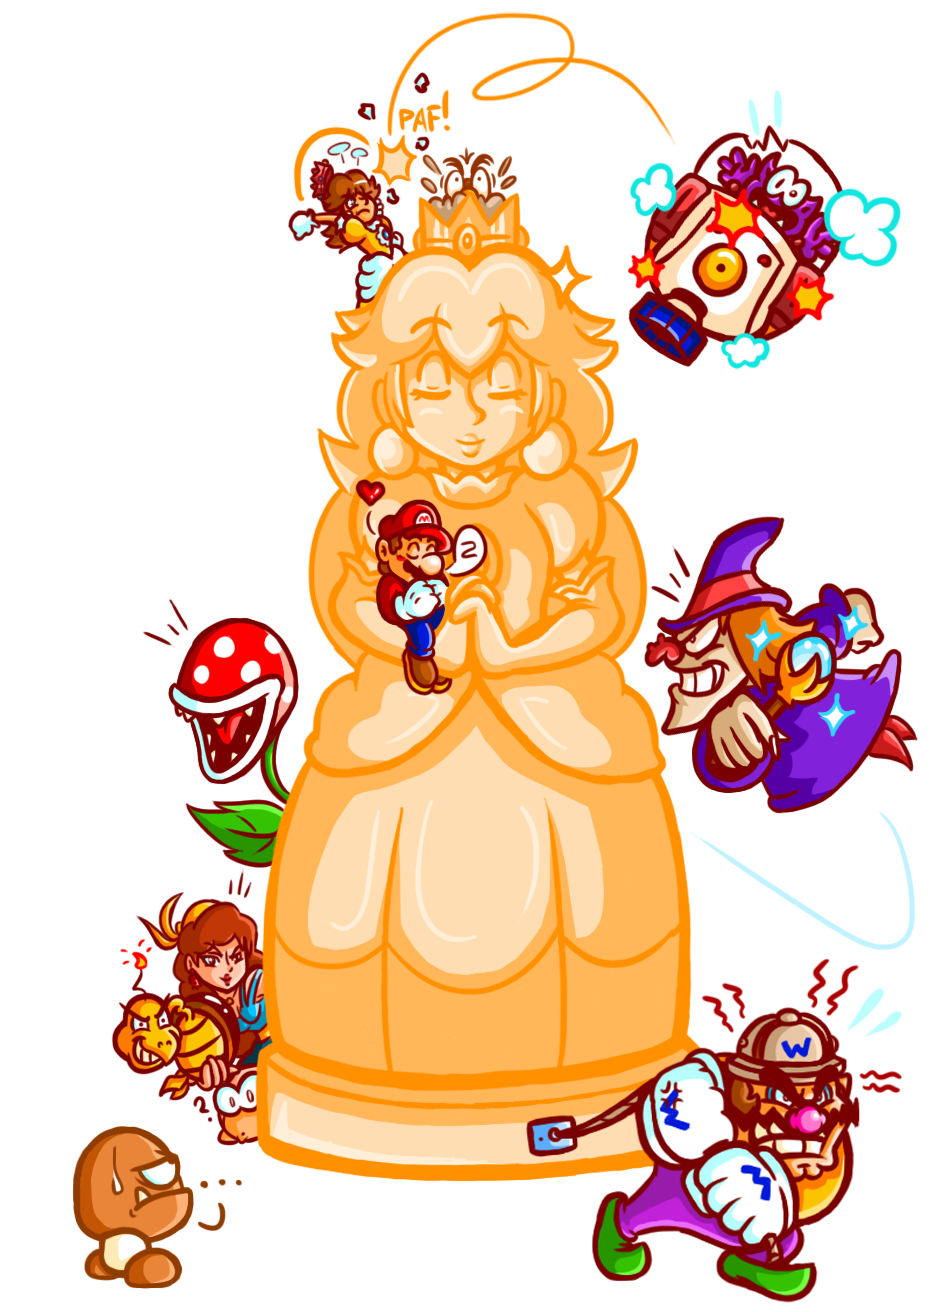 Mario - A Reunion at the Golden Statue